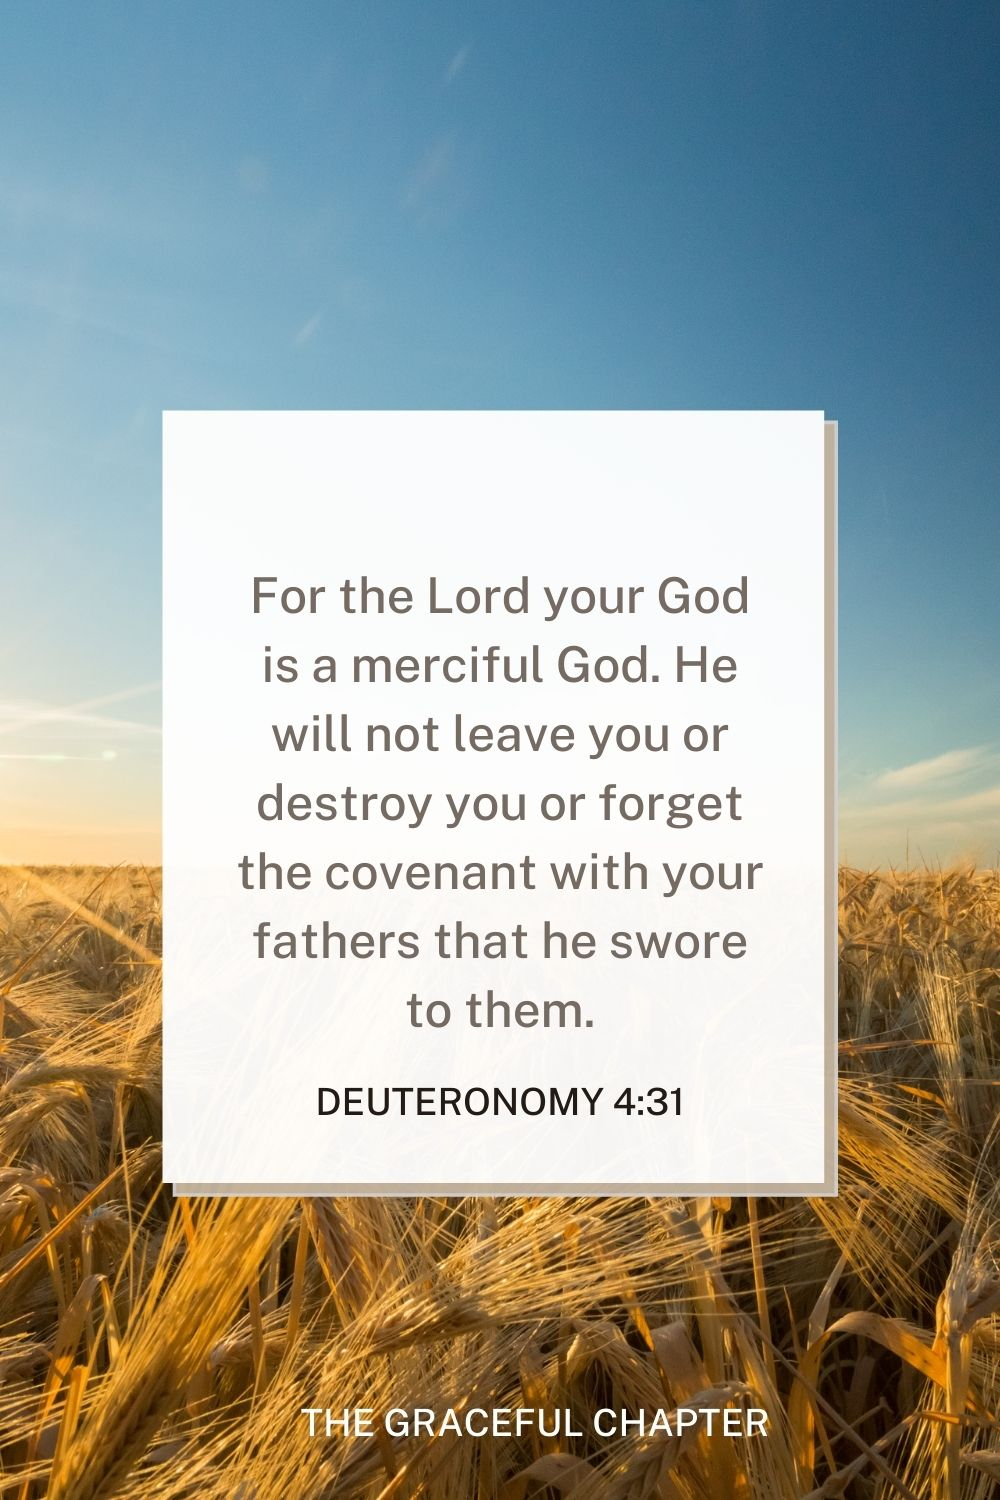 For the Lord your God is a merciful God. He will not leave you or destroy you or forget the covenant with your fathers that he swore to them. Deuteronomy 4:31